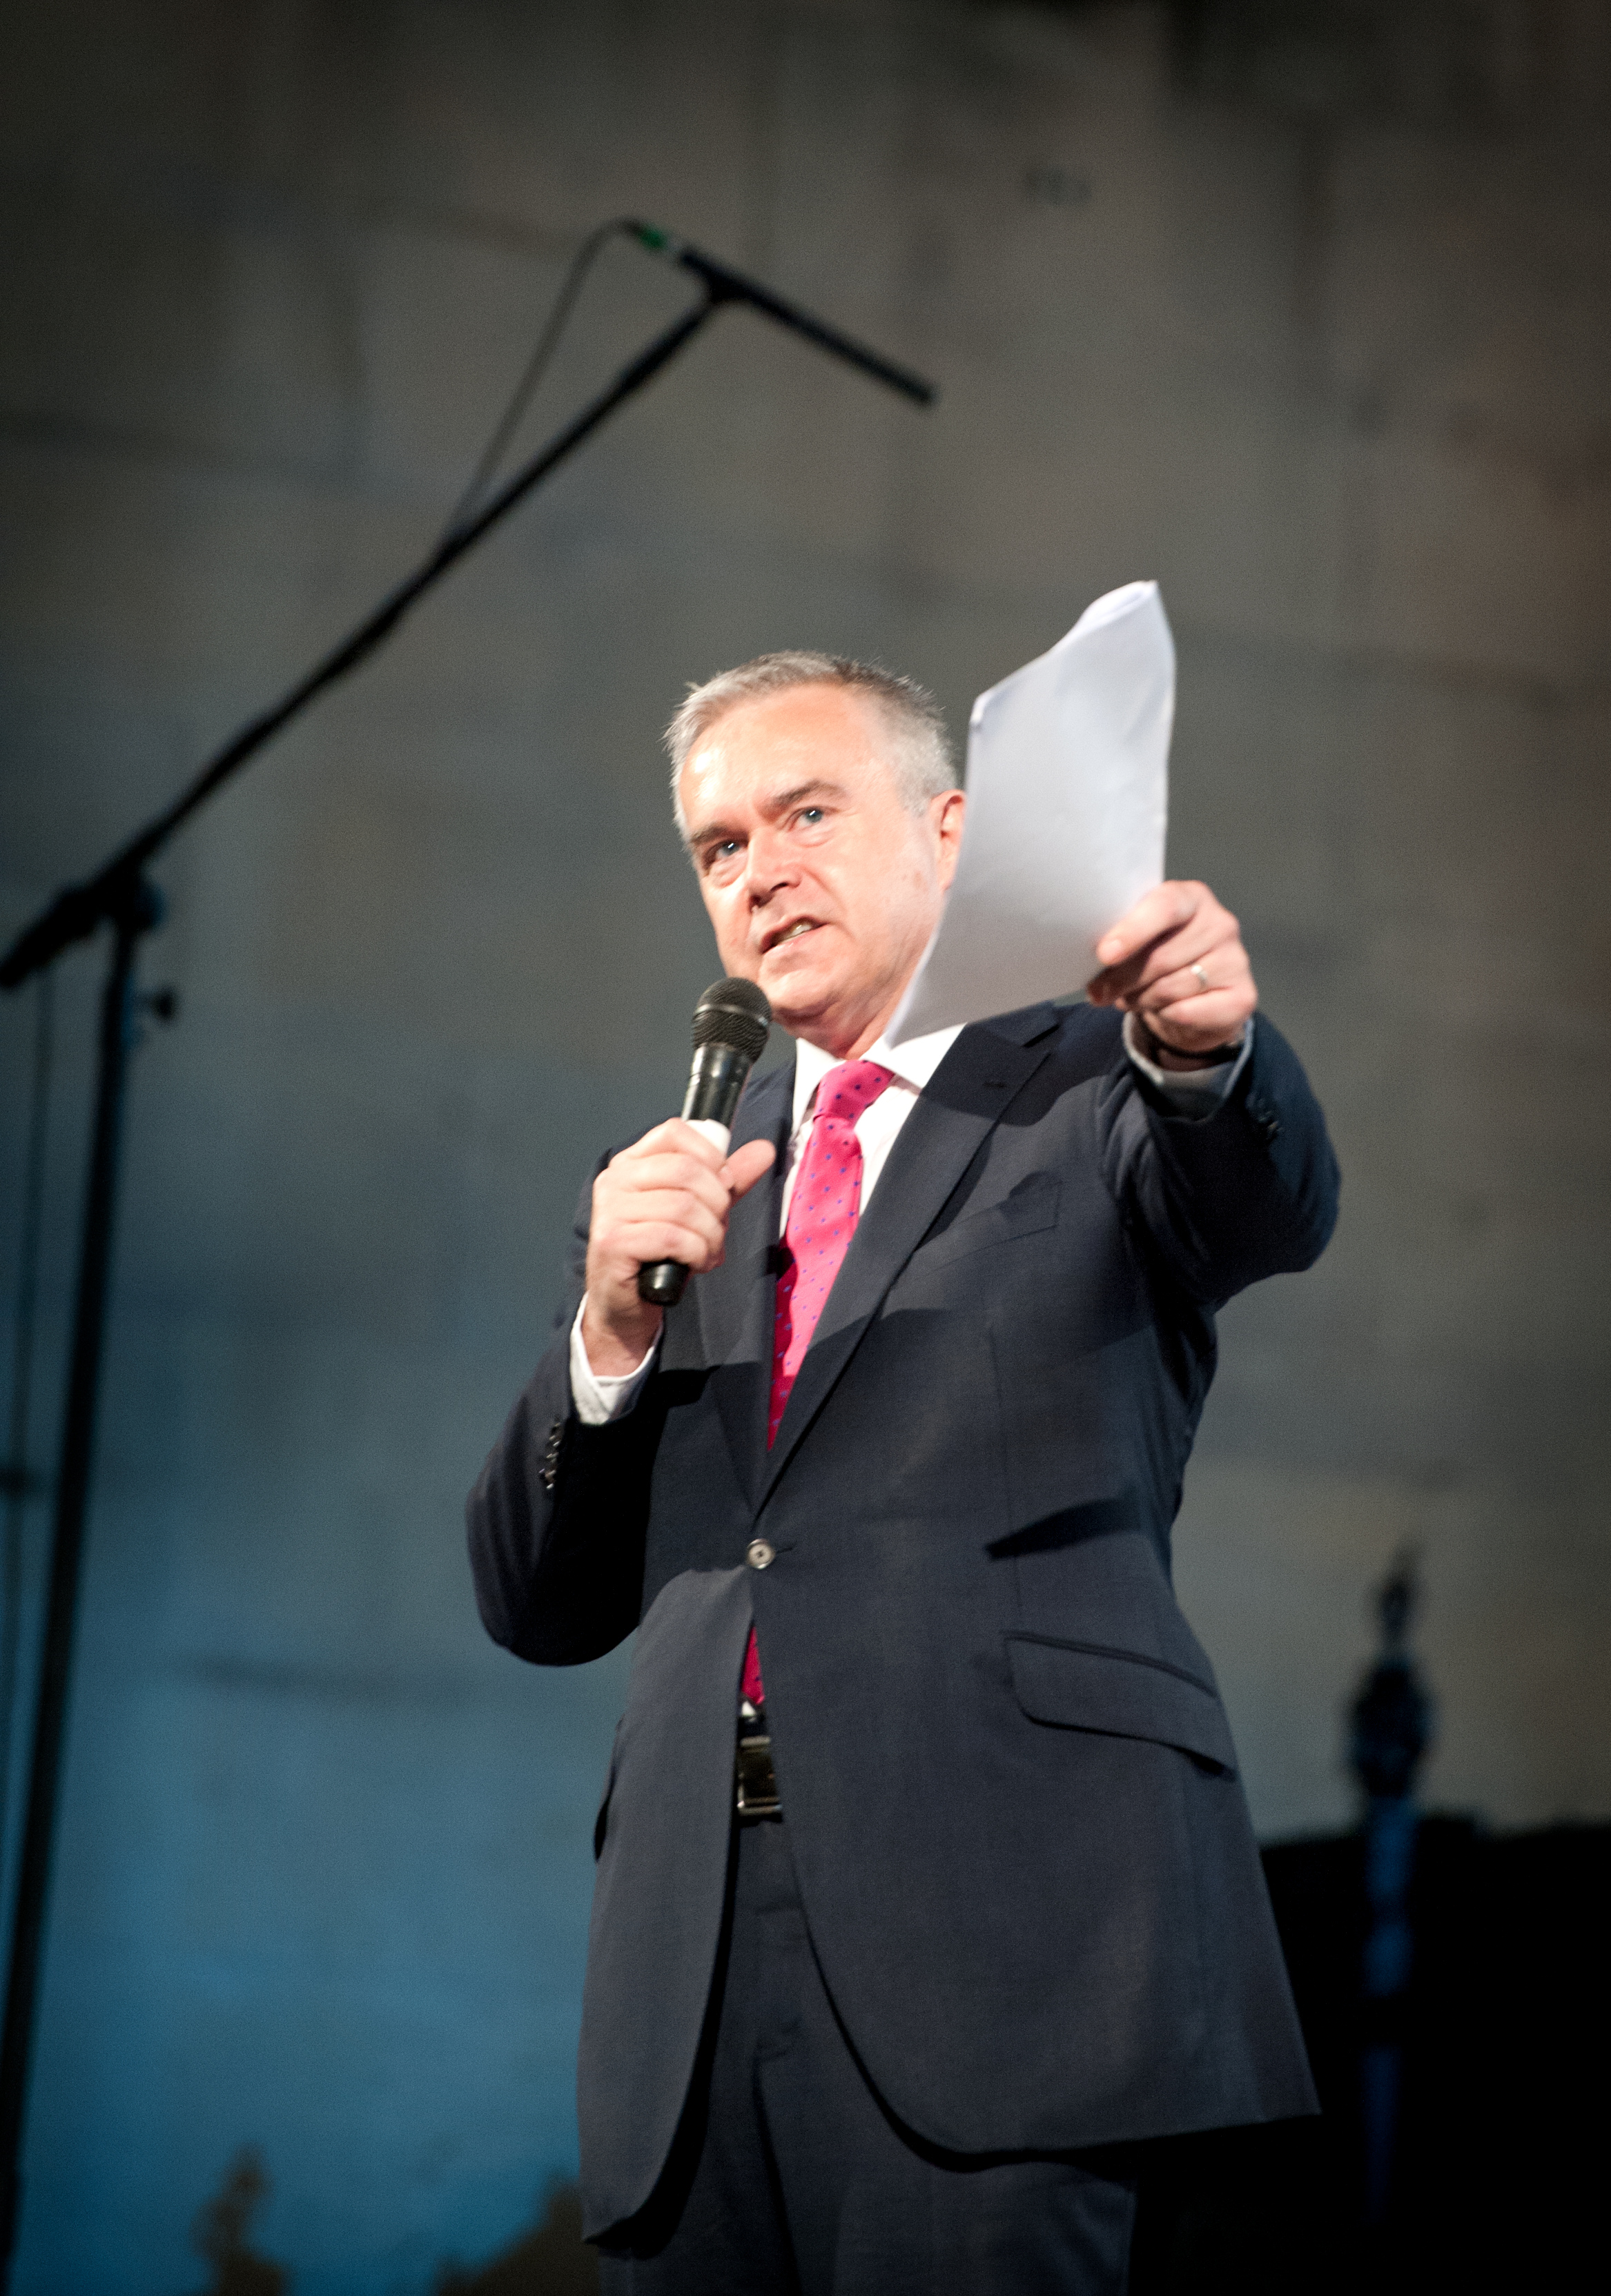 Host Huw Edwards